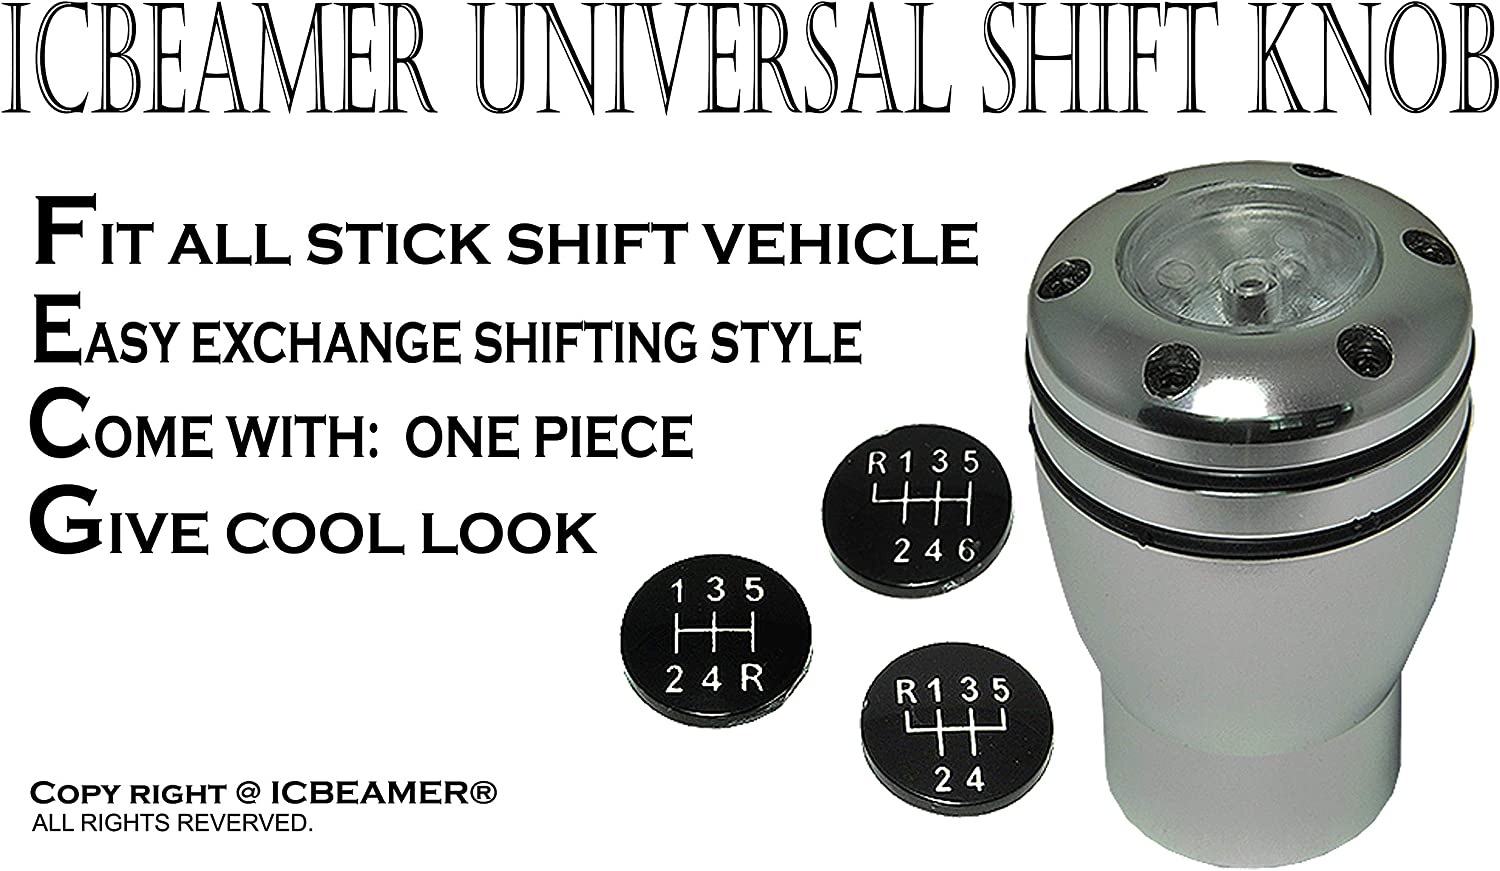 ICBEAMER Gear Stick Shifter Knobs Racing Aluminum Silver Manual Short Throw Shift Knob 5 6 Speed with White LED Light